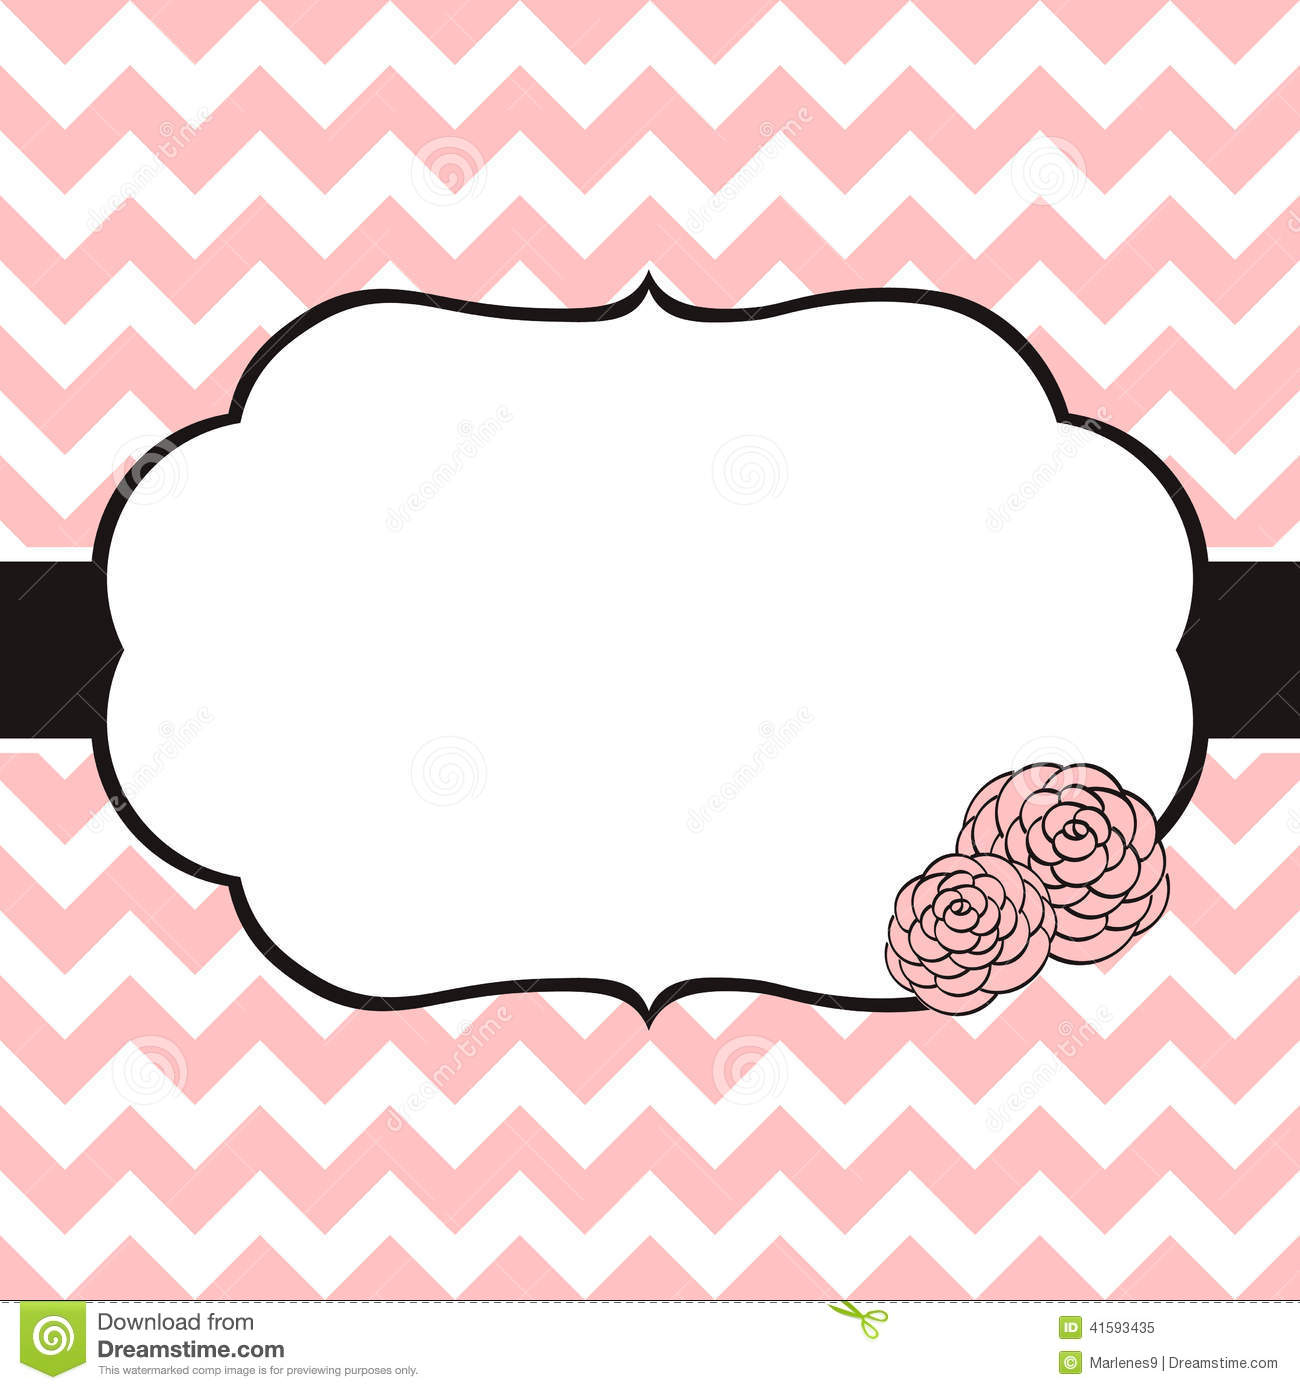 Black And White Polka Dot Wallpaper Border Floral Card Template Stock Vector Image Of Decorative